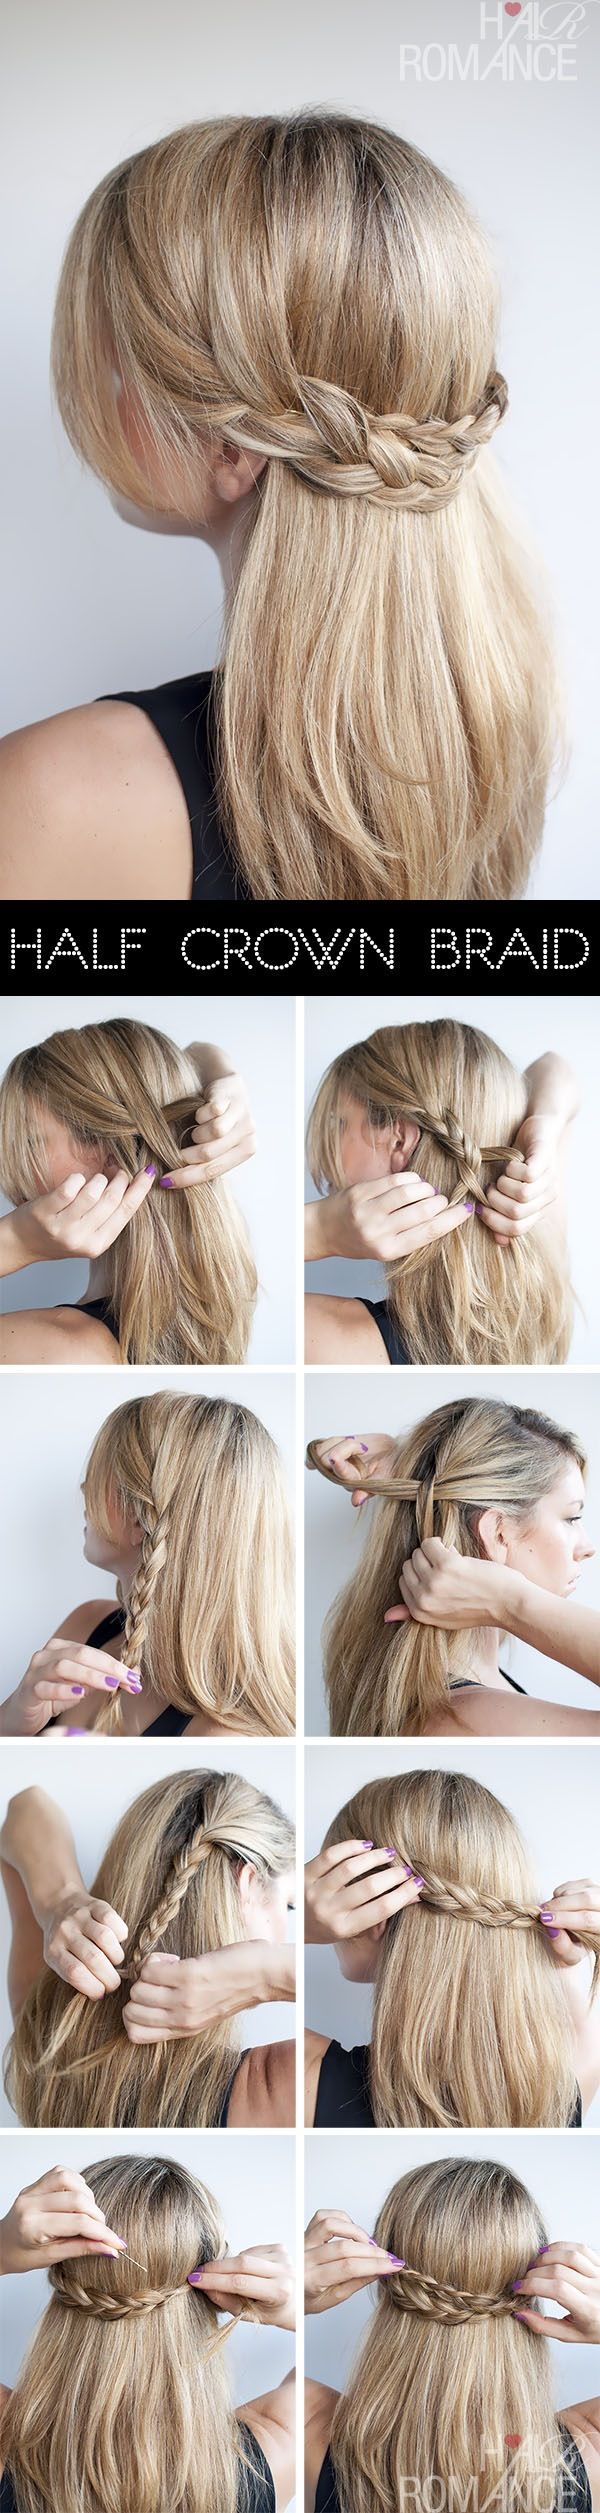 how to half braid crown simple and pretty